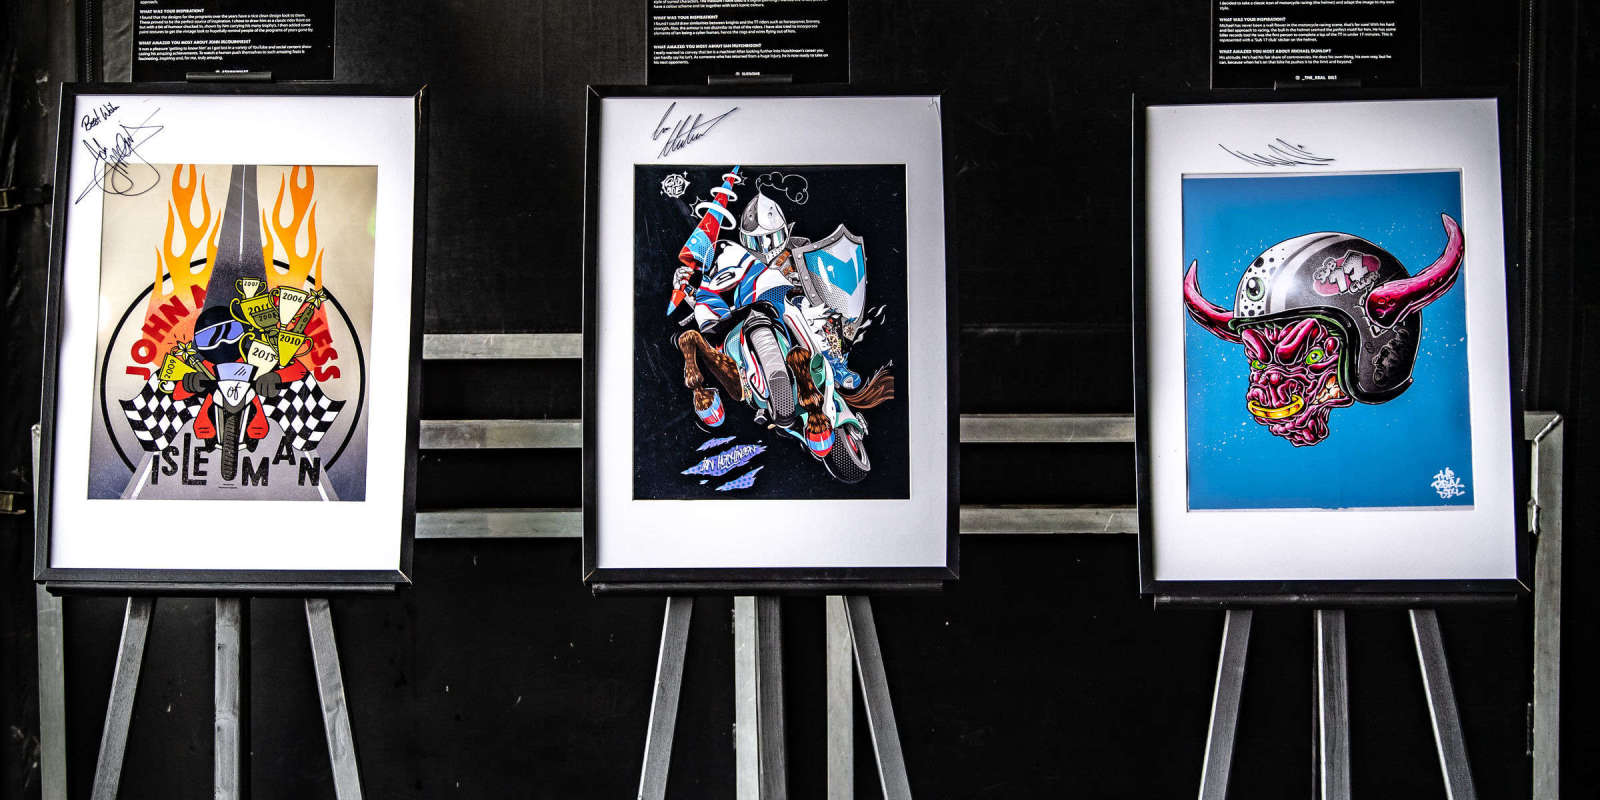 Images of Michael Dunlop signing the Monster commissioned fan giveaway artwork.